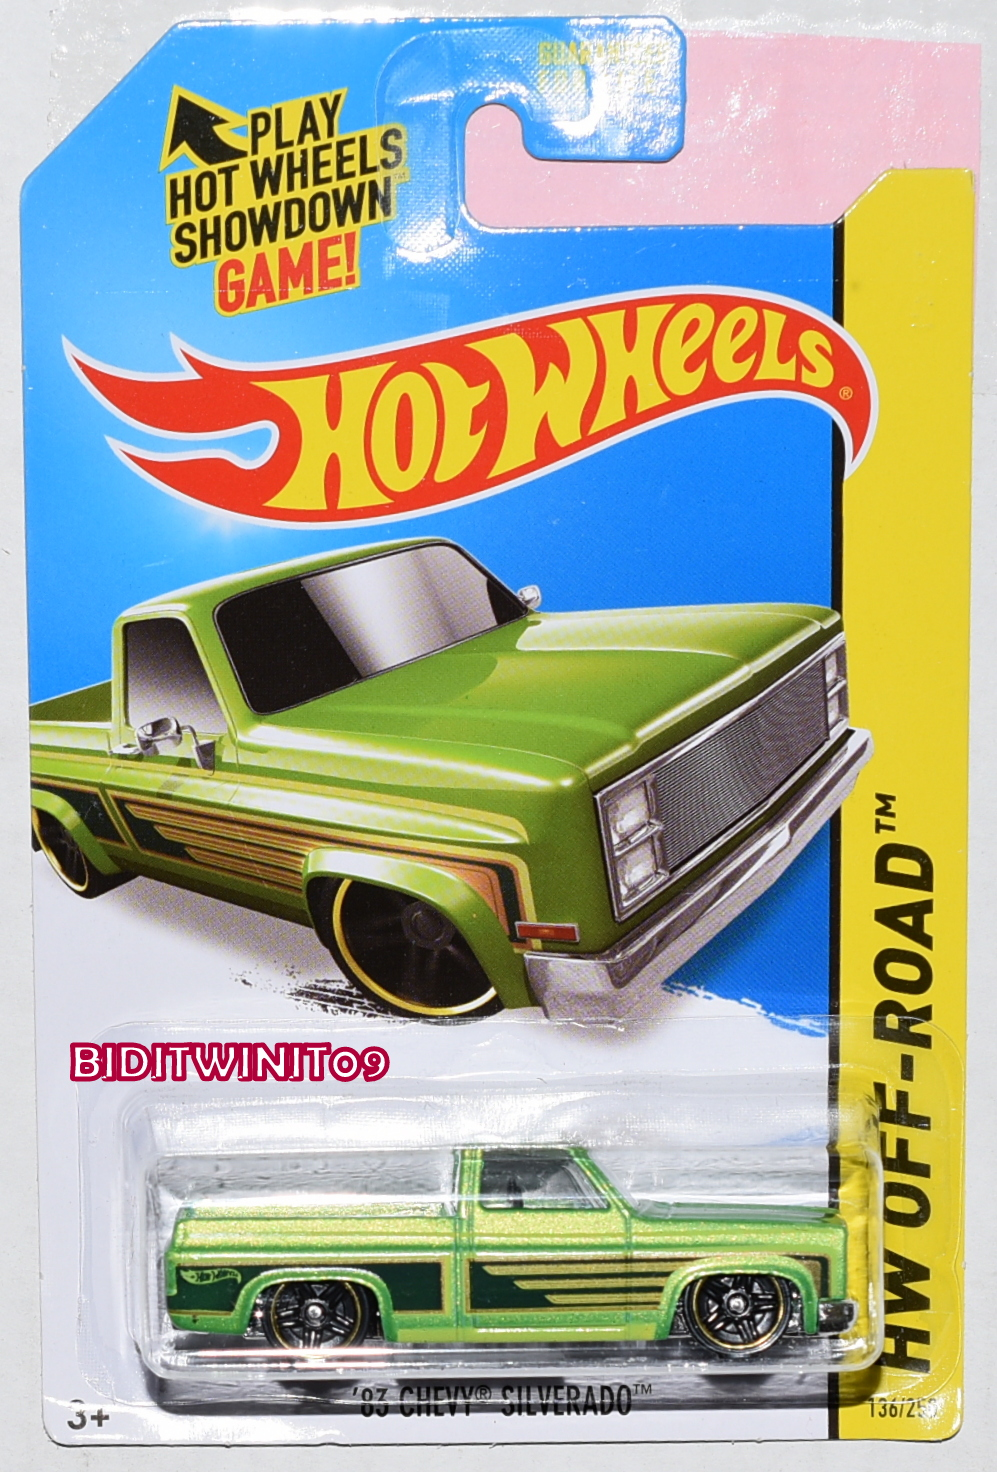 HOT WHEELS 2014 HW OFF-ROAD '83 CHEVY SILVERADO KMART EXCLUSIVE GREEN